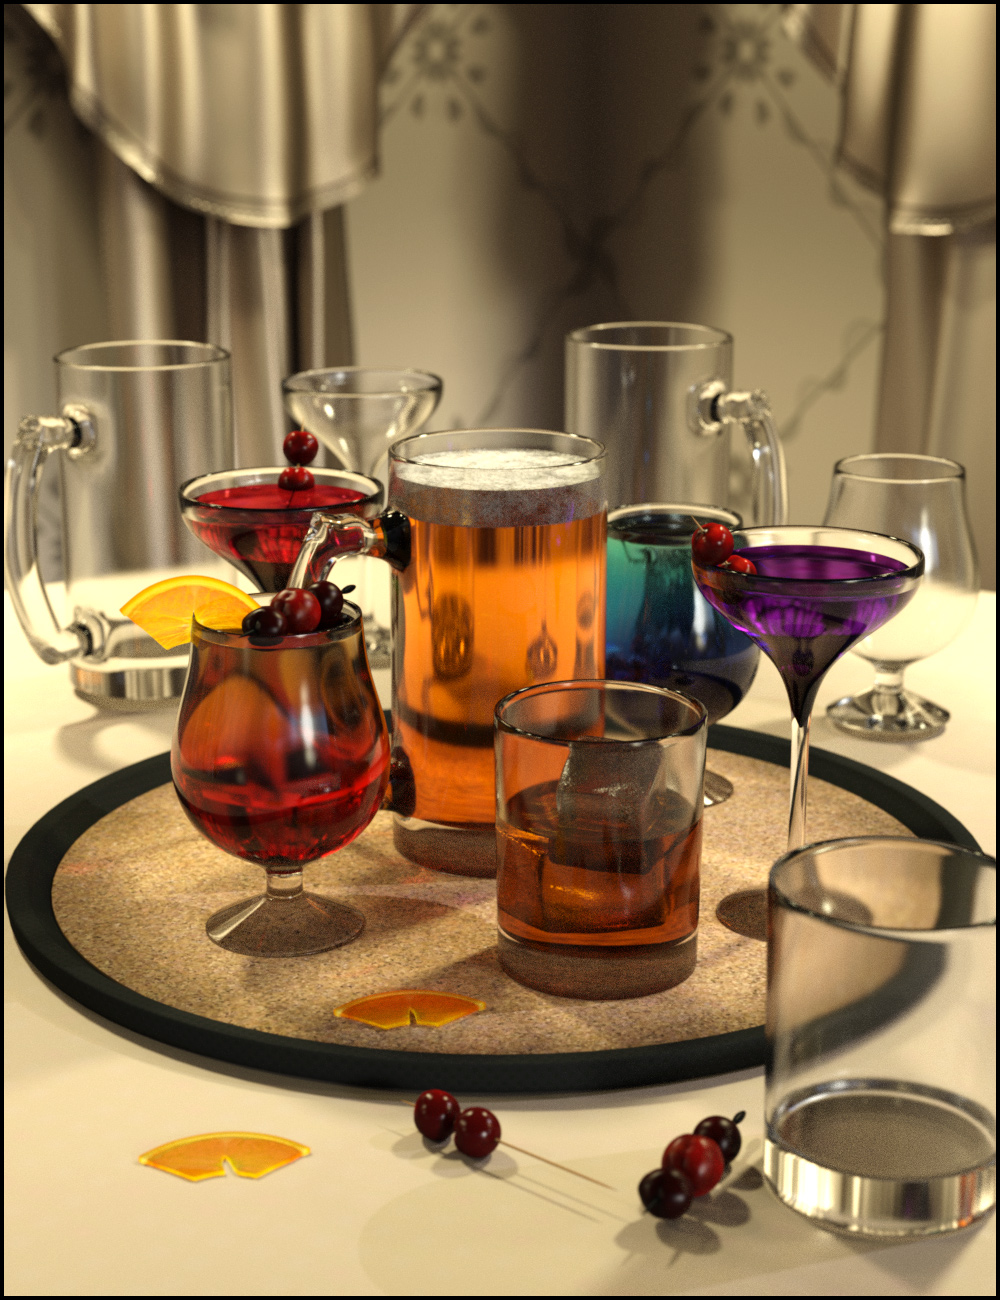 Cheers Drink Tray and Drinks by: ARTCollab, 3D Models by Daz 3D